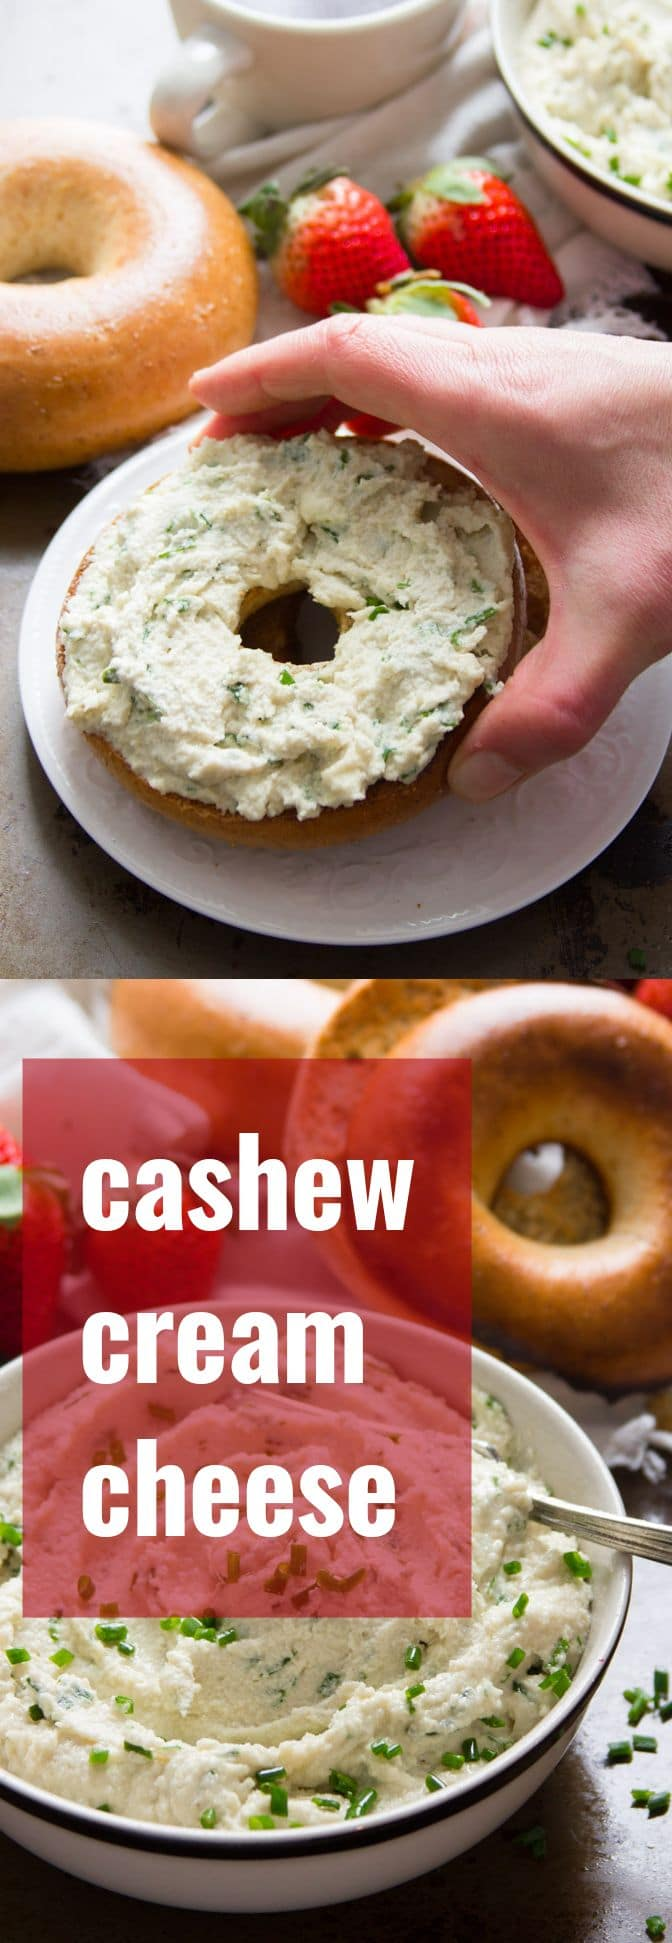 Cashew Cream Cheese